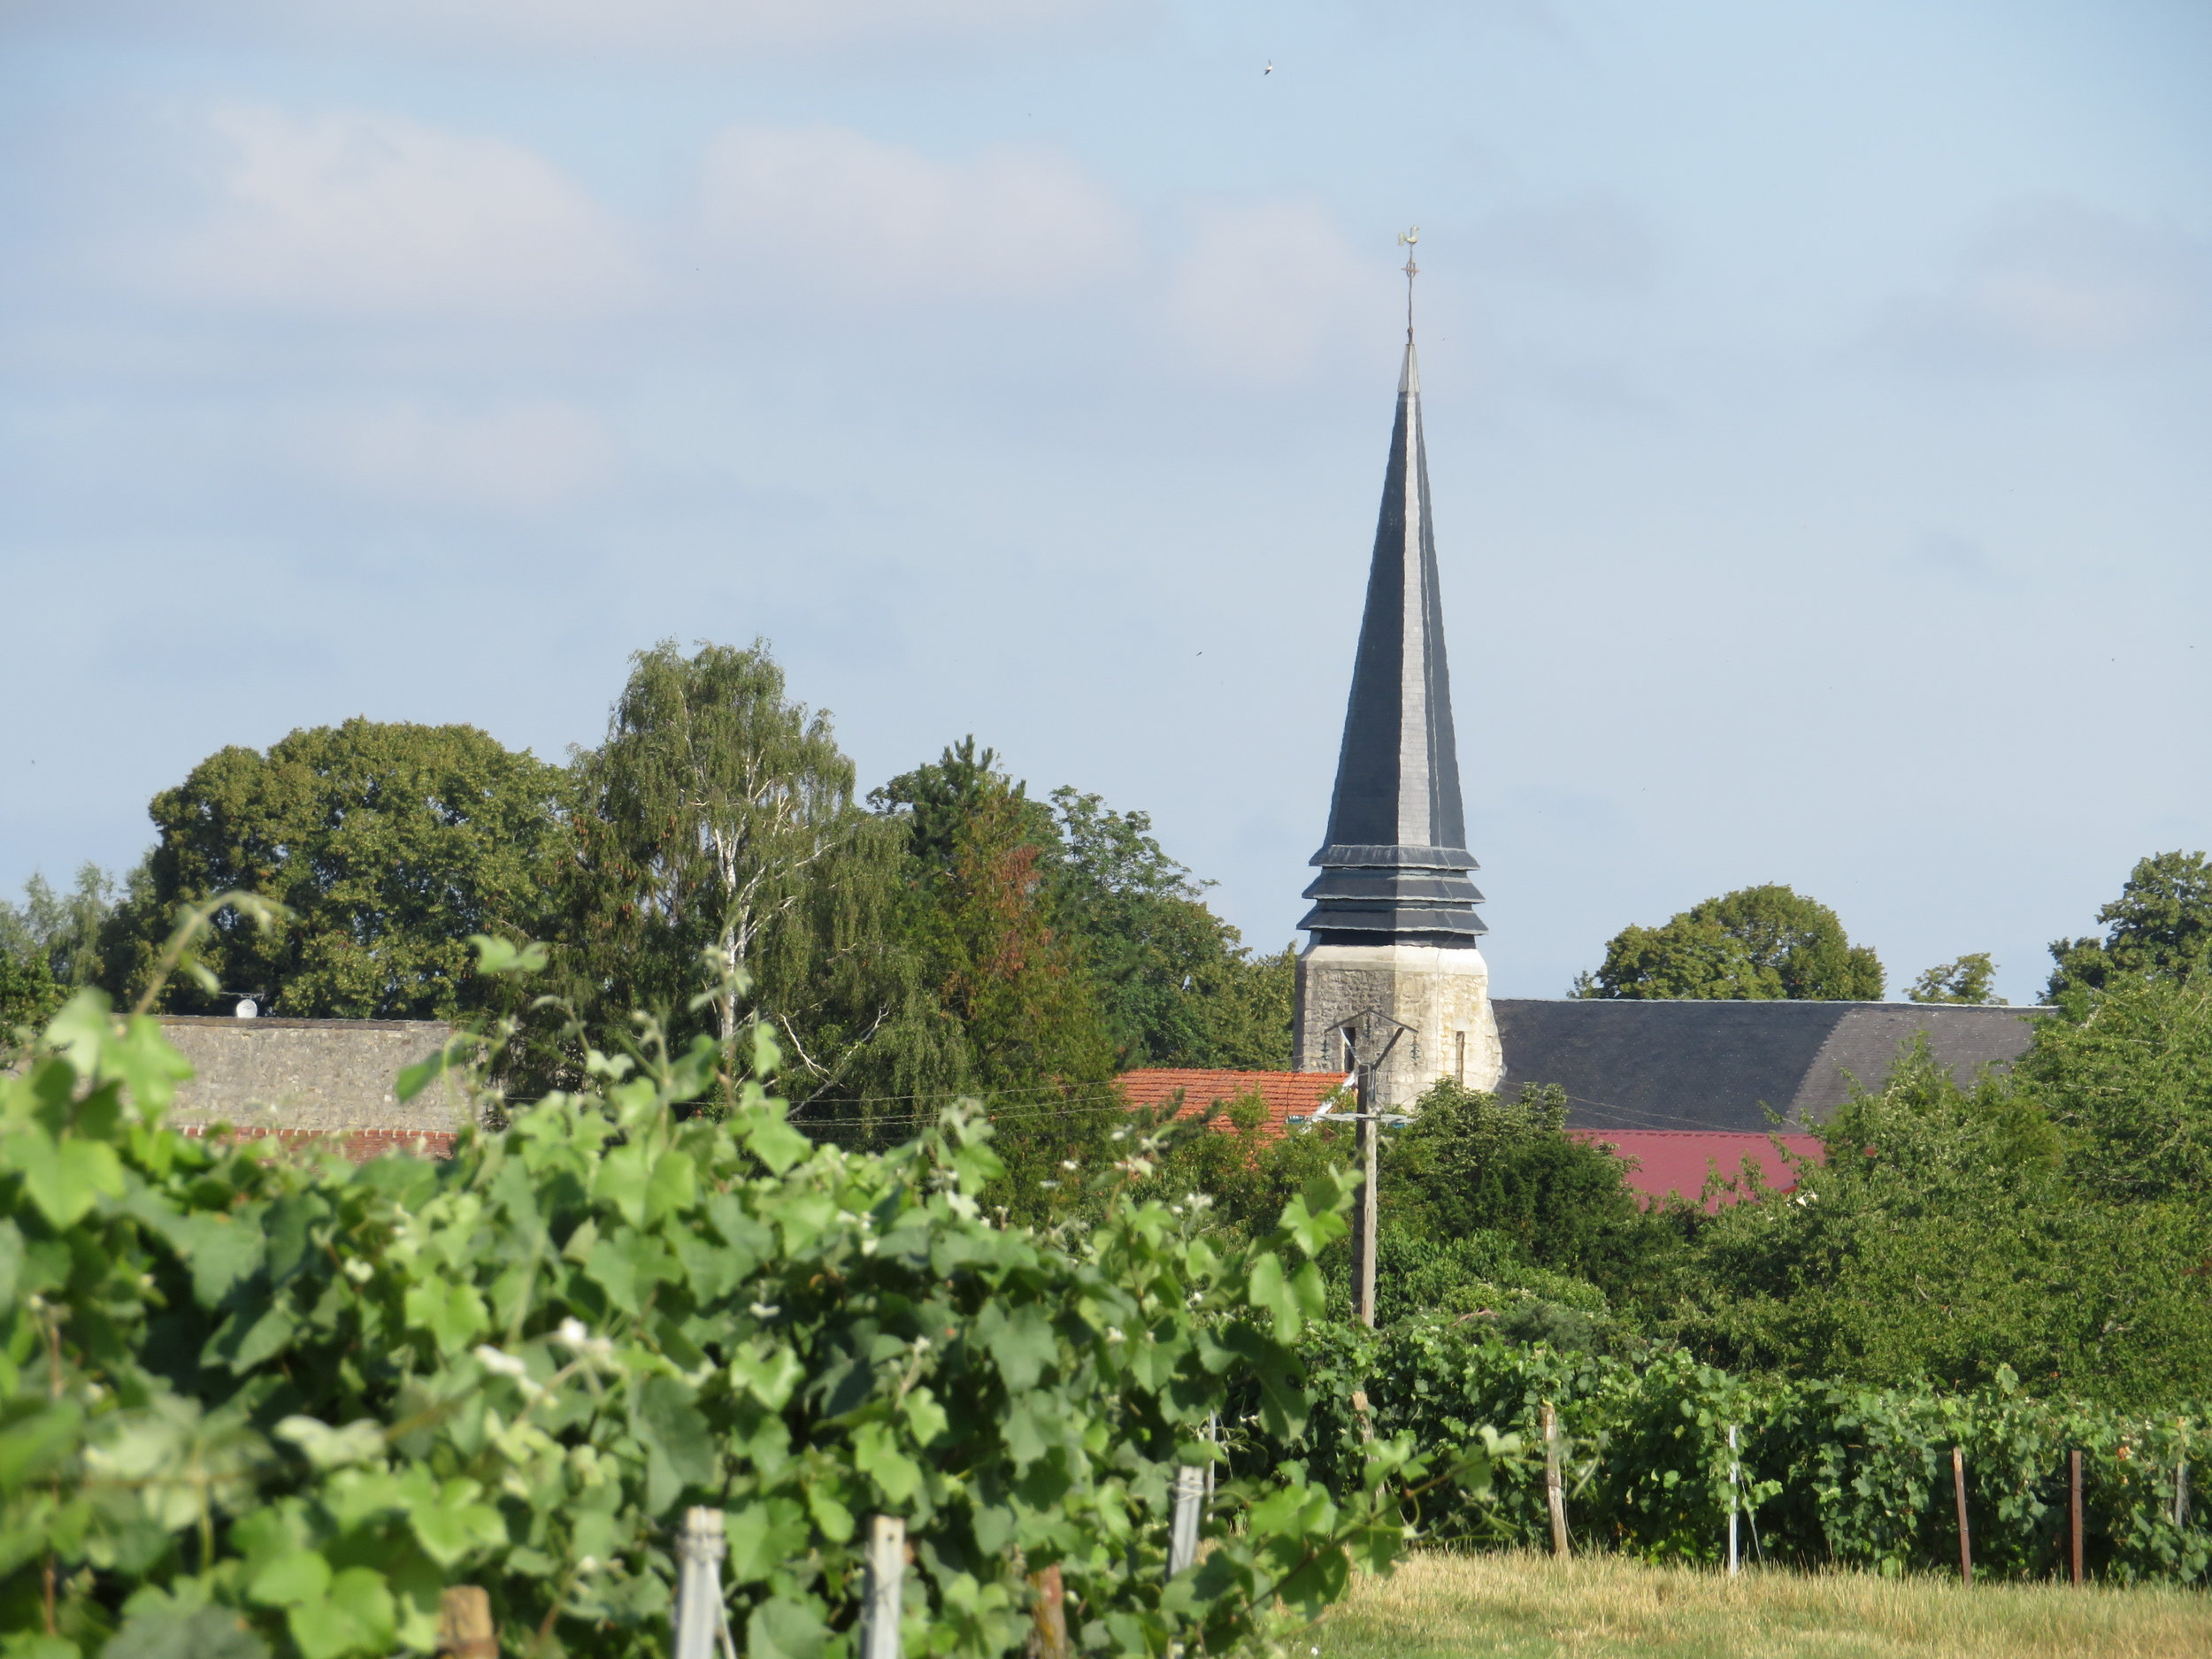 Today's path led us through vineyards, fields and small villages.